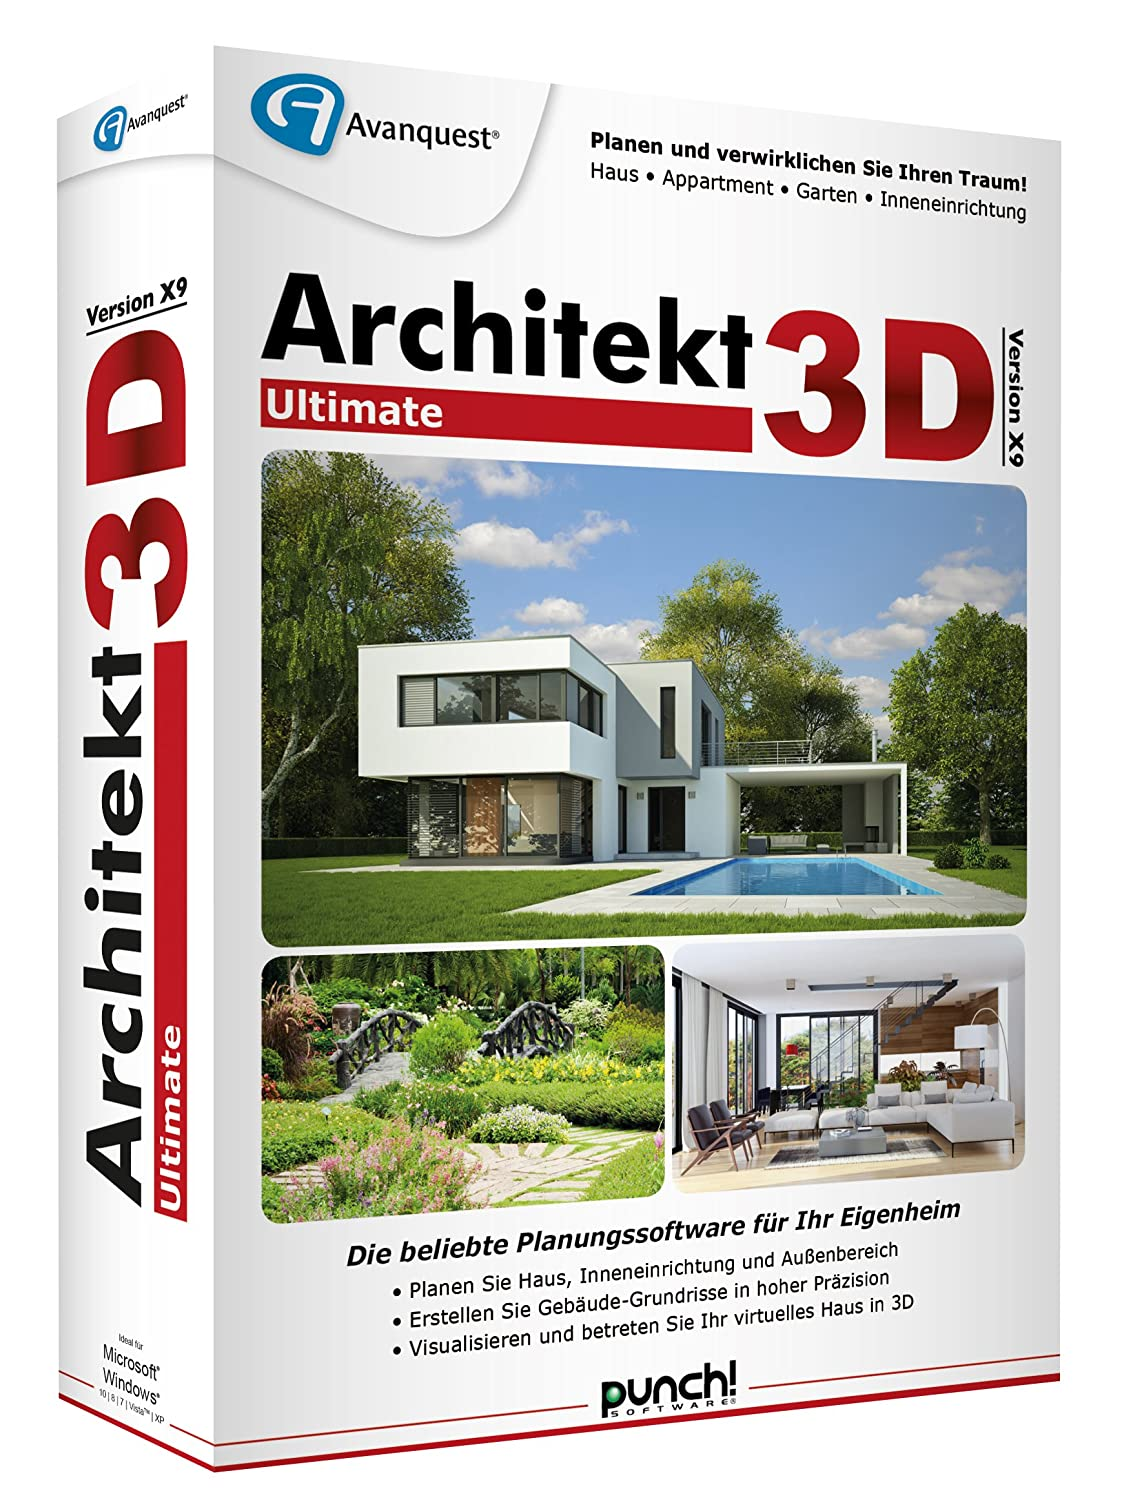 Architekt 3D X9 Ultimate: Amazon.de: Software